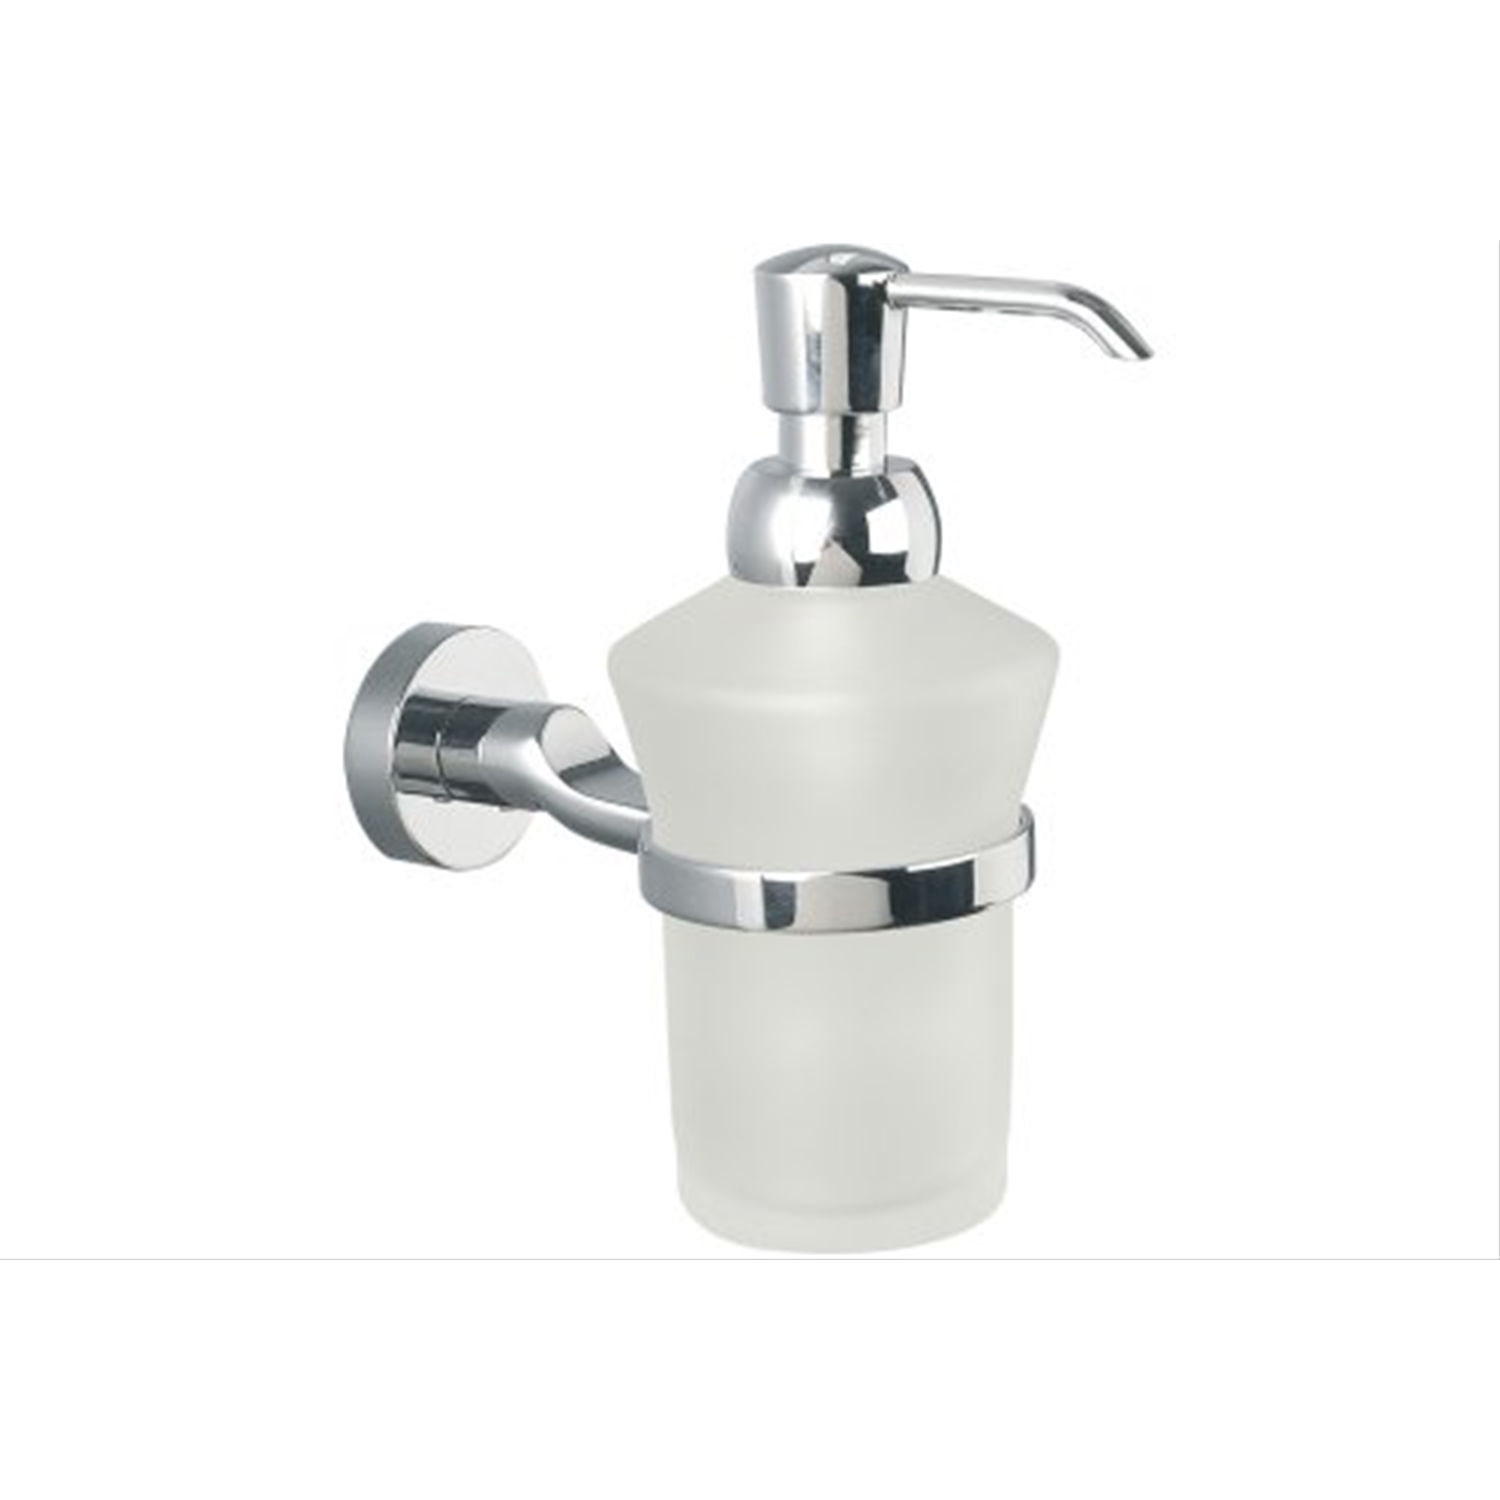 Image of Miller Bond Soap Dispenser